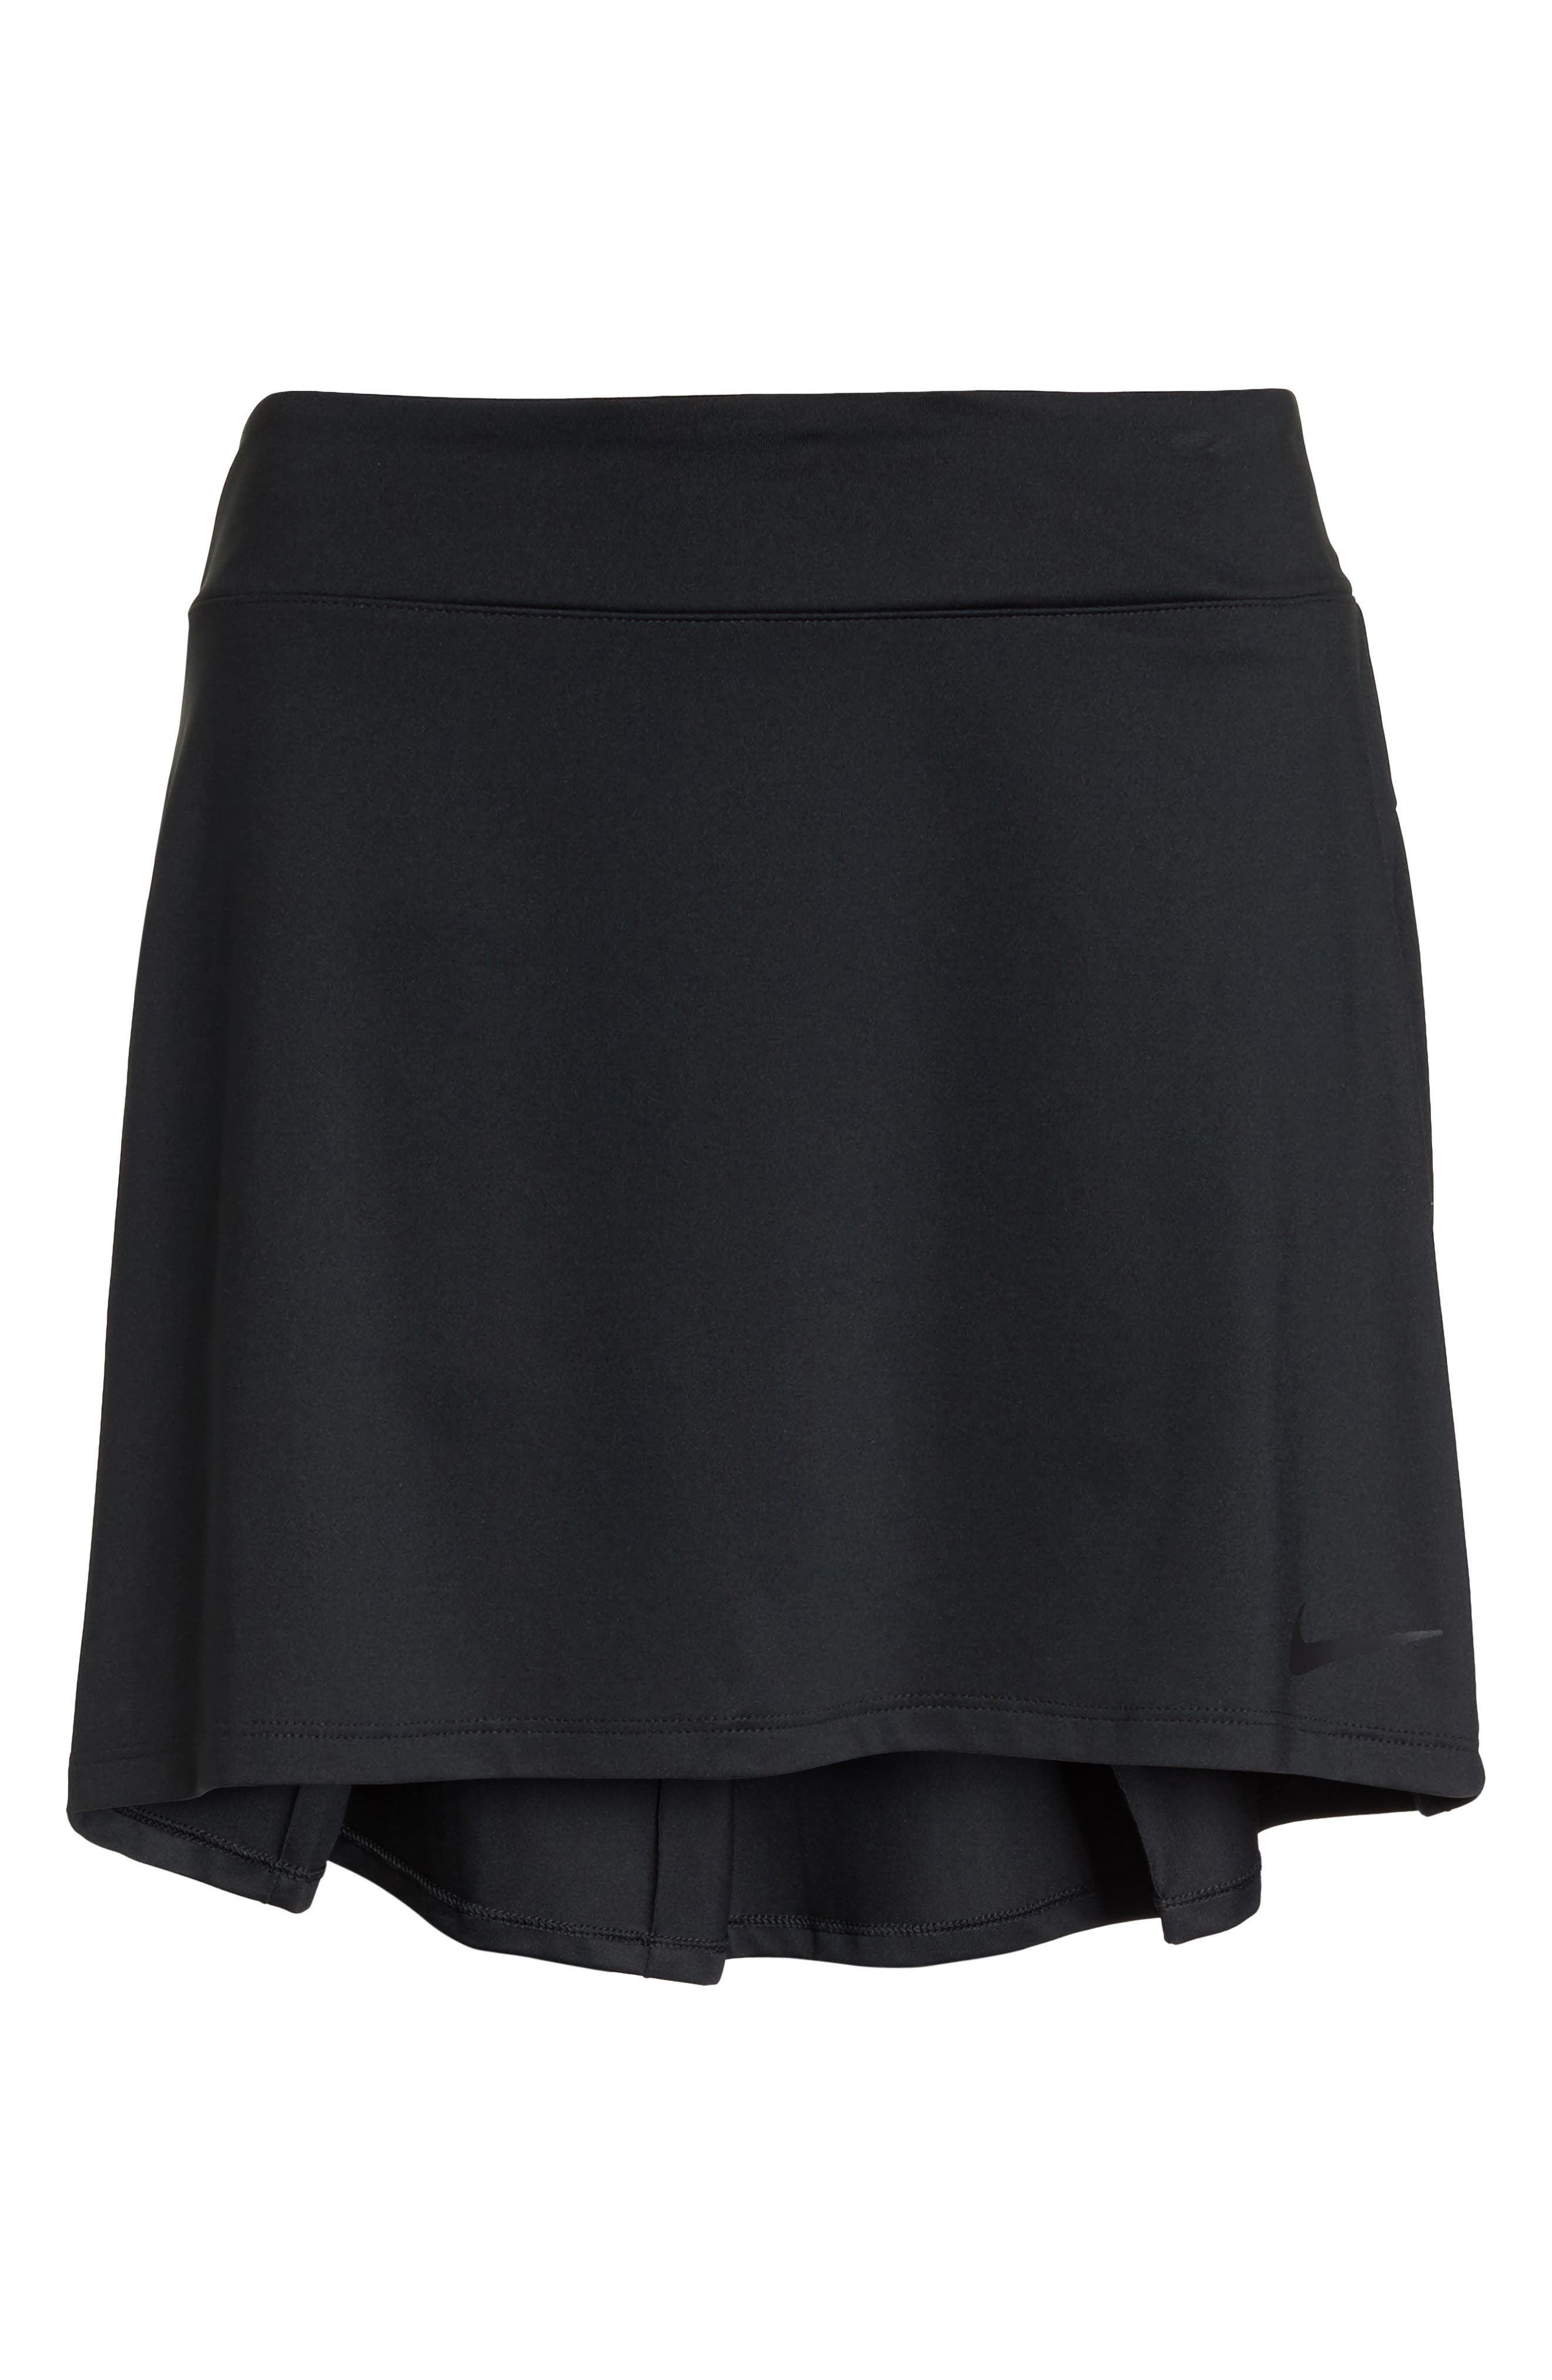 Flex Golf Skort,                             Alternate thumbnail 7, color,                             010